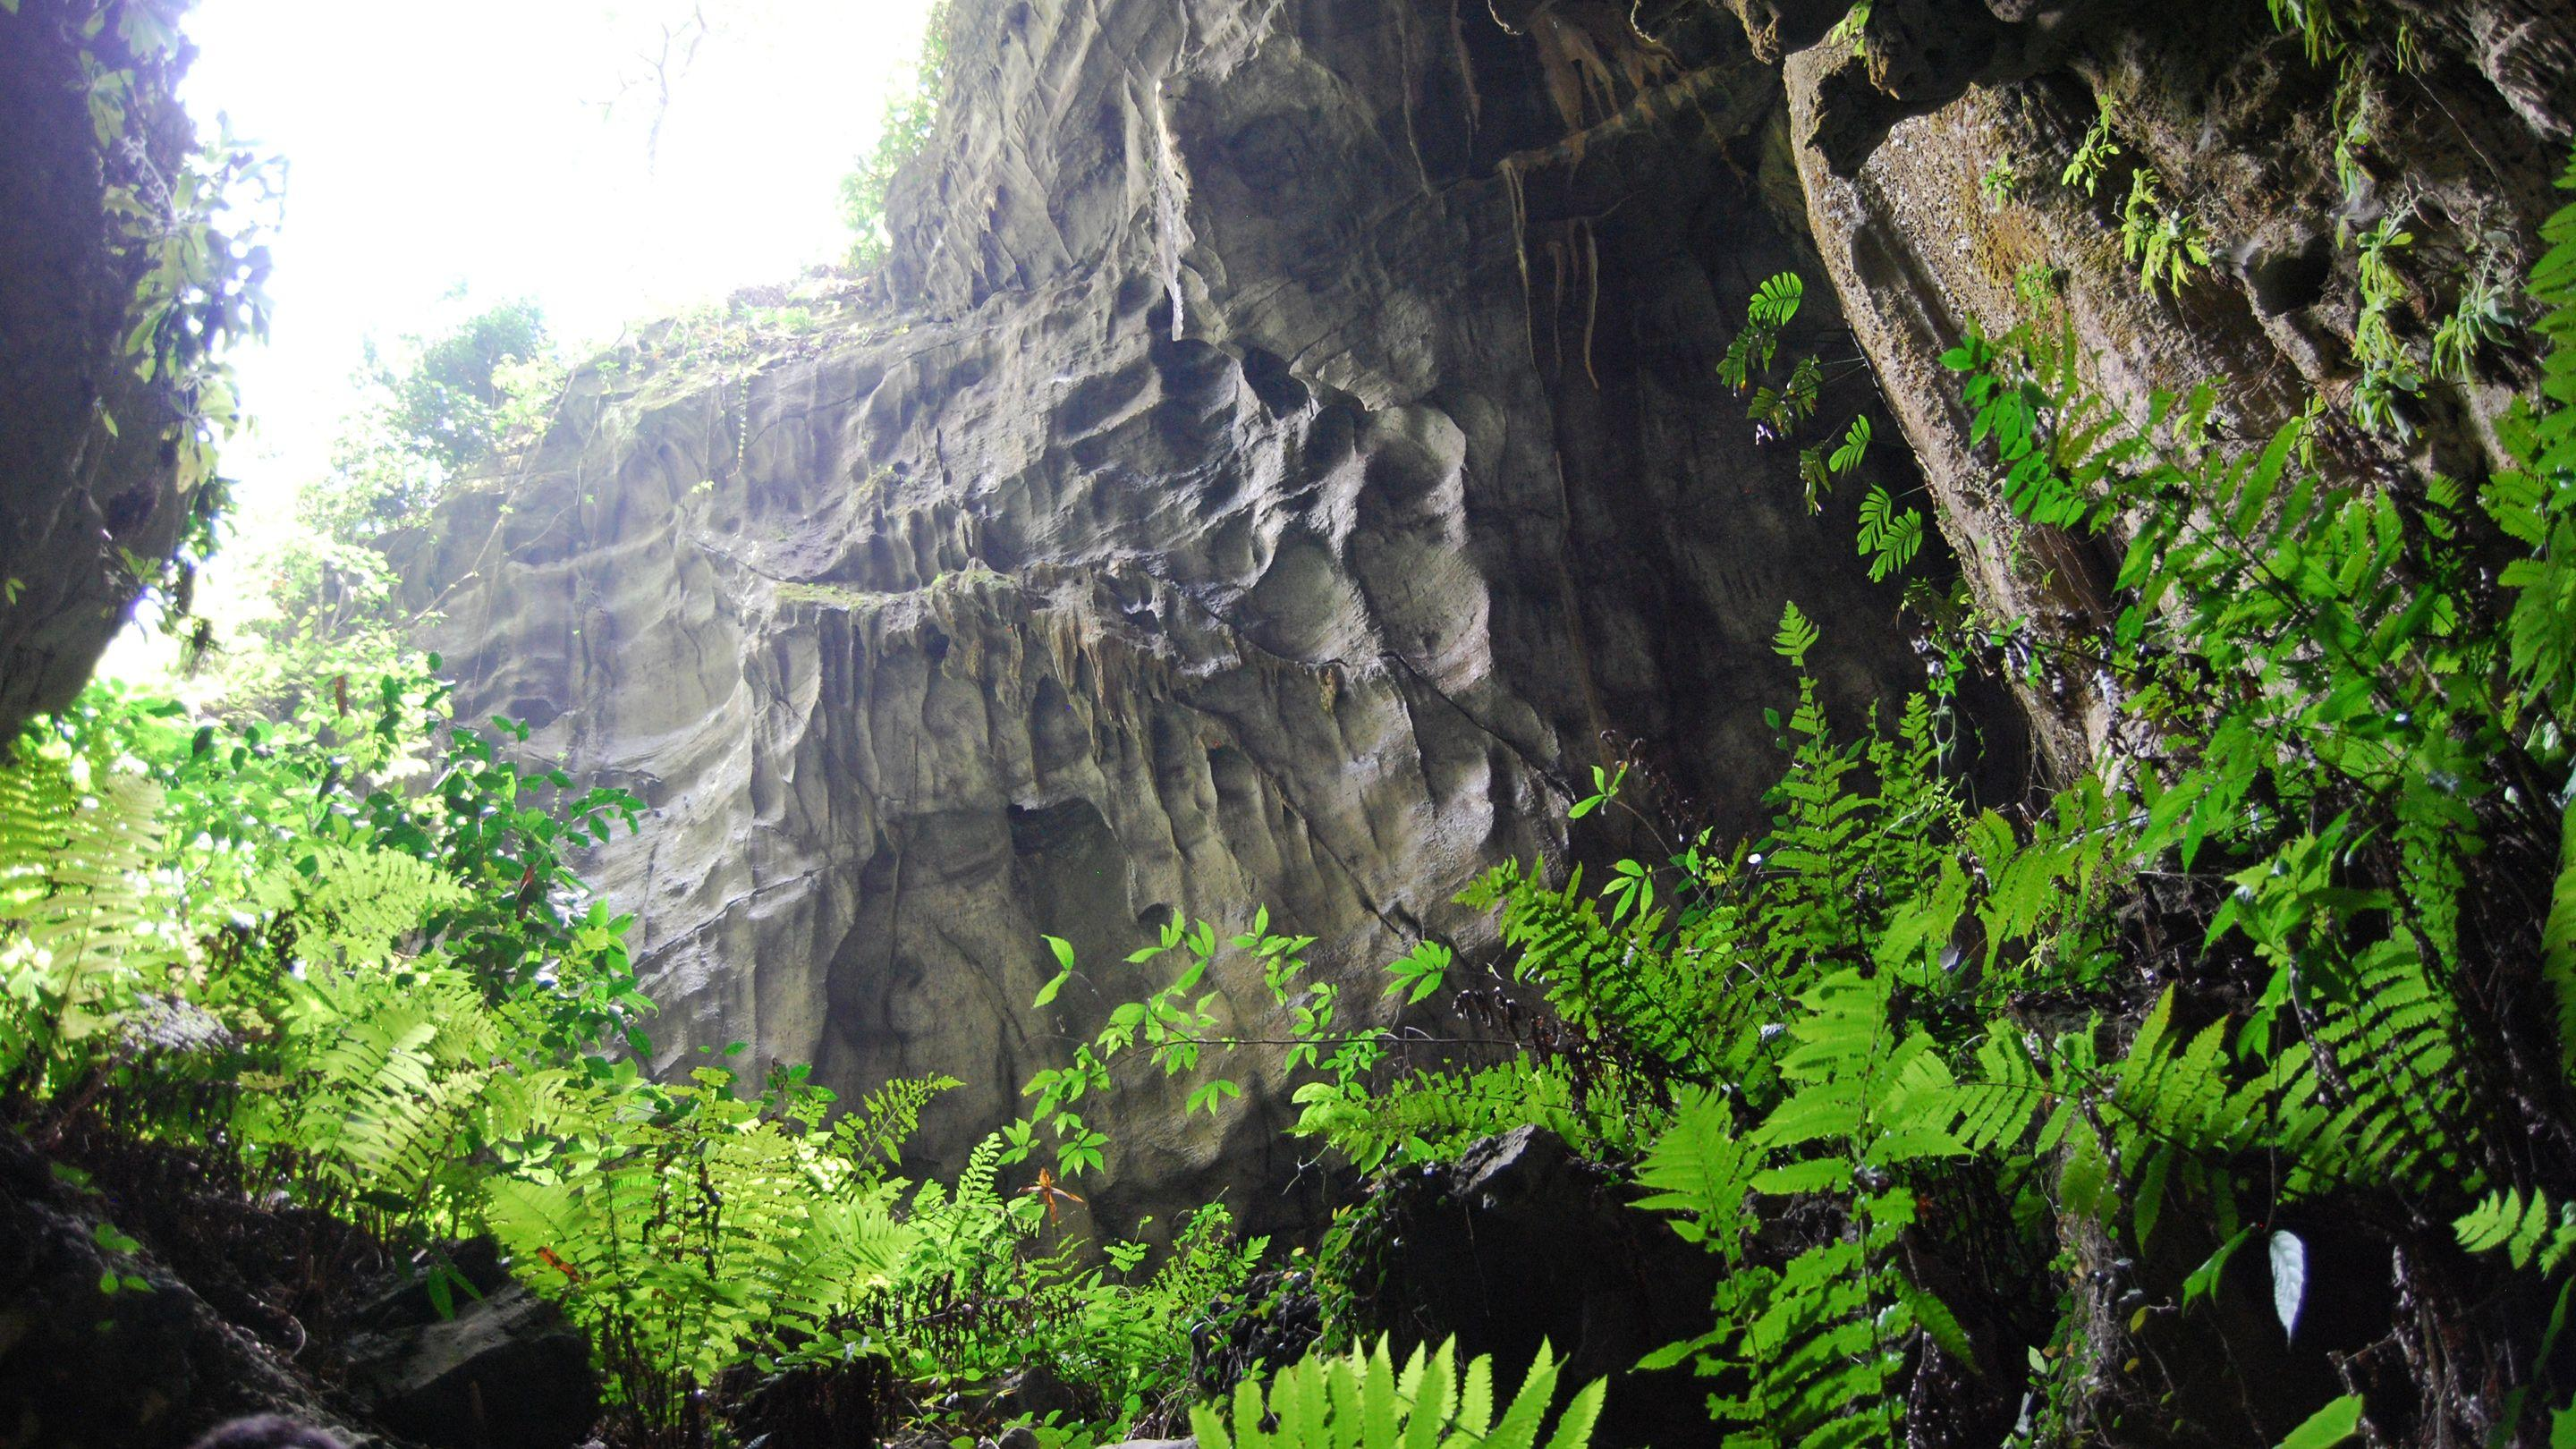 Cave flora in China (Image: Alex Monro)